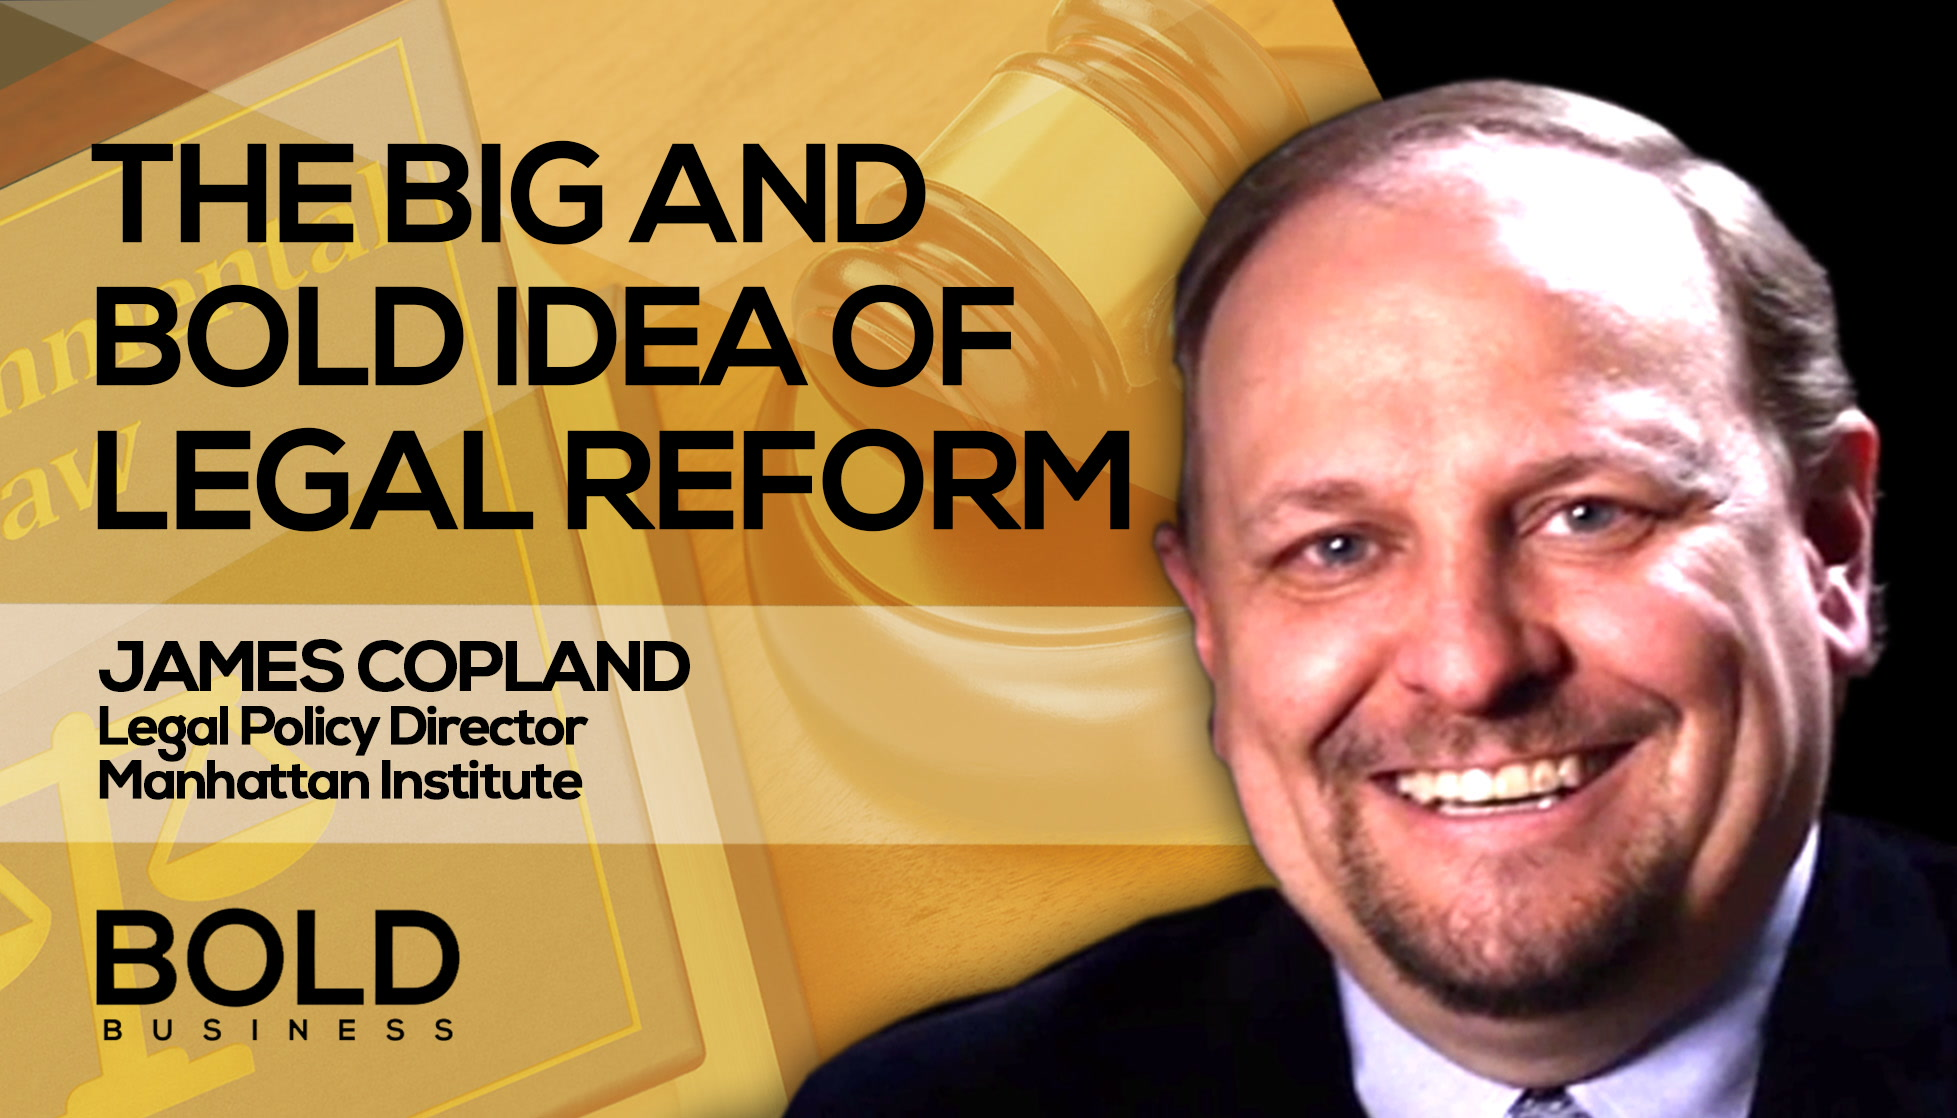 James Copland: Bold Idea of Legal Reform